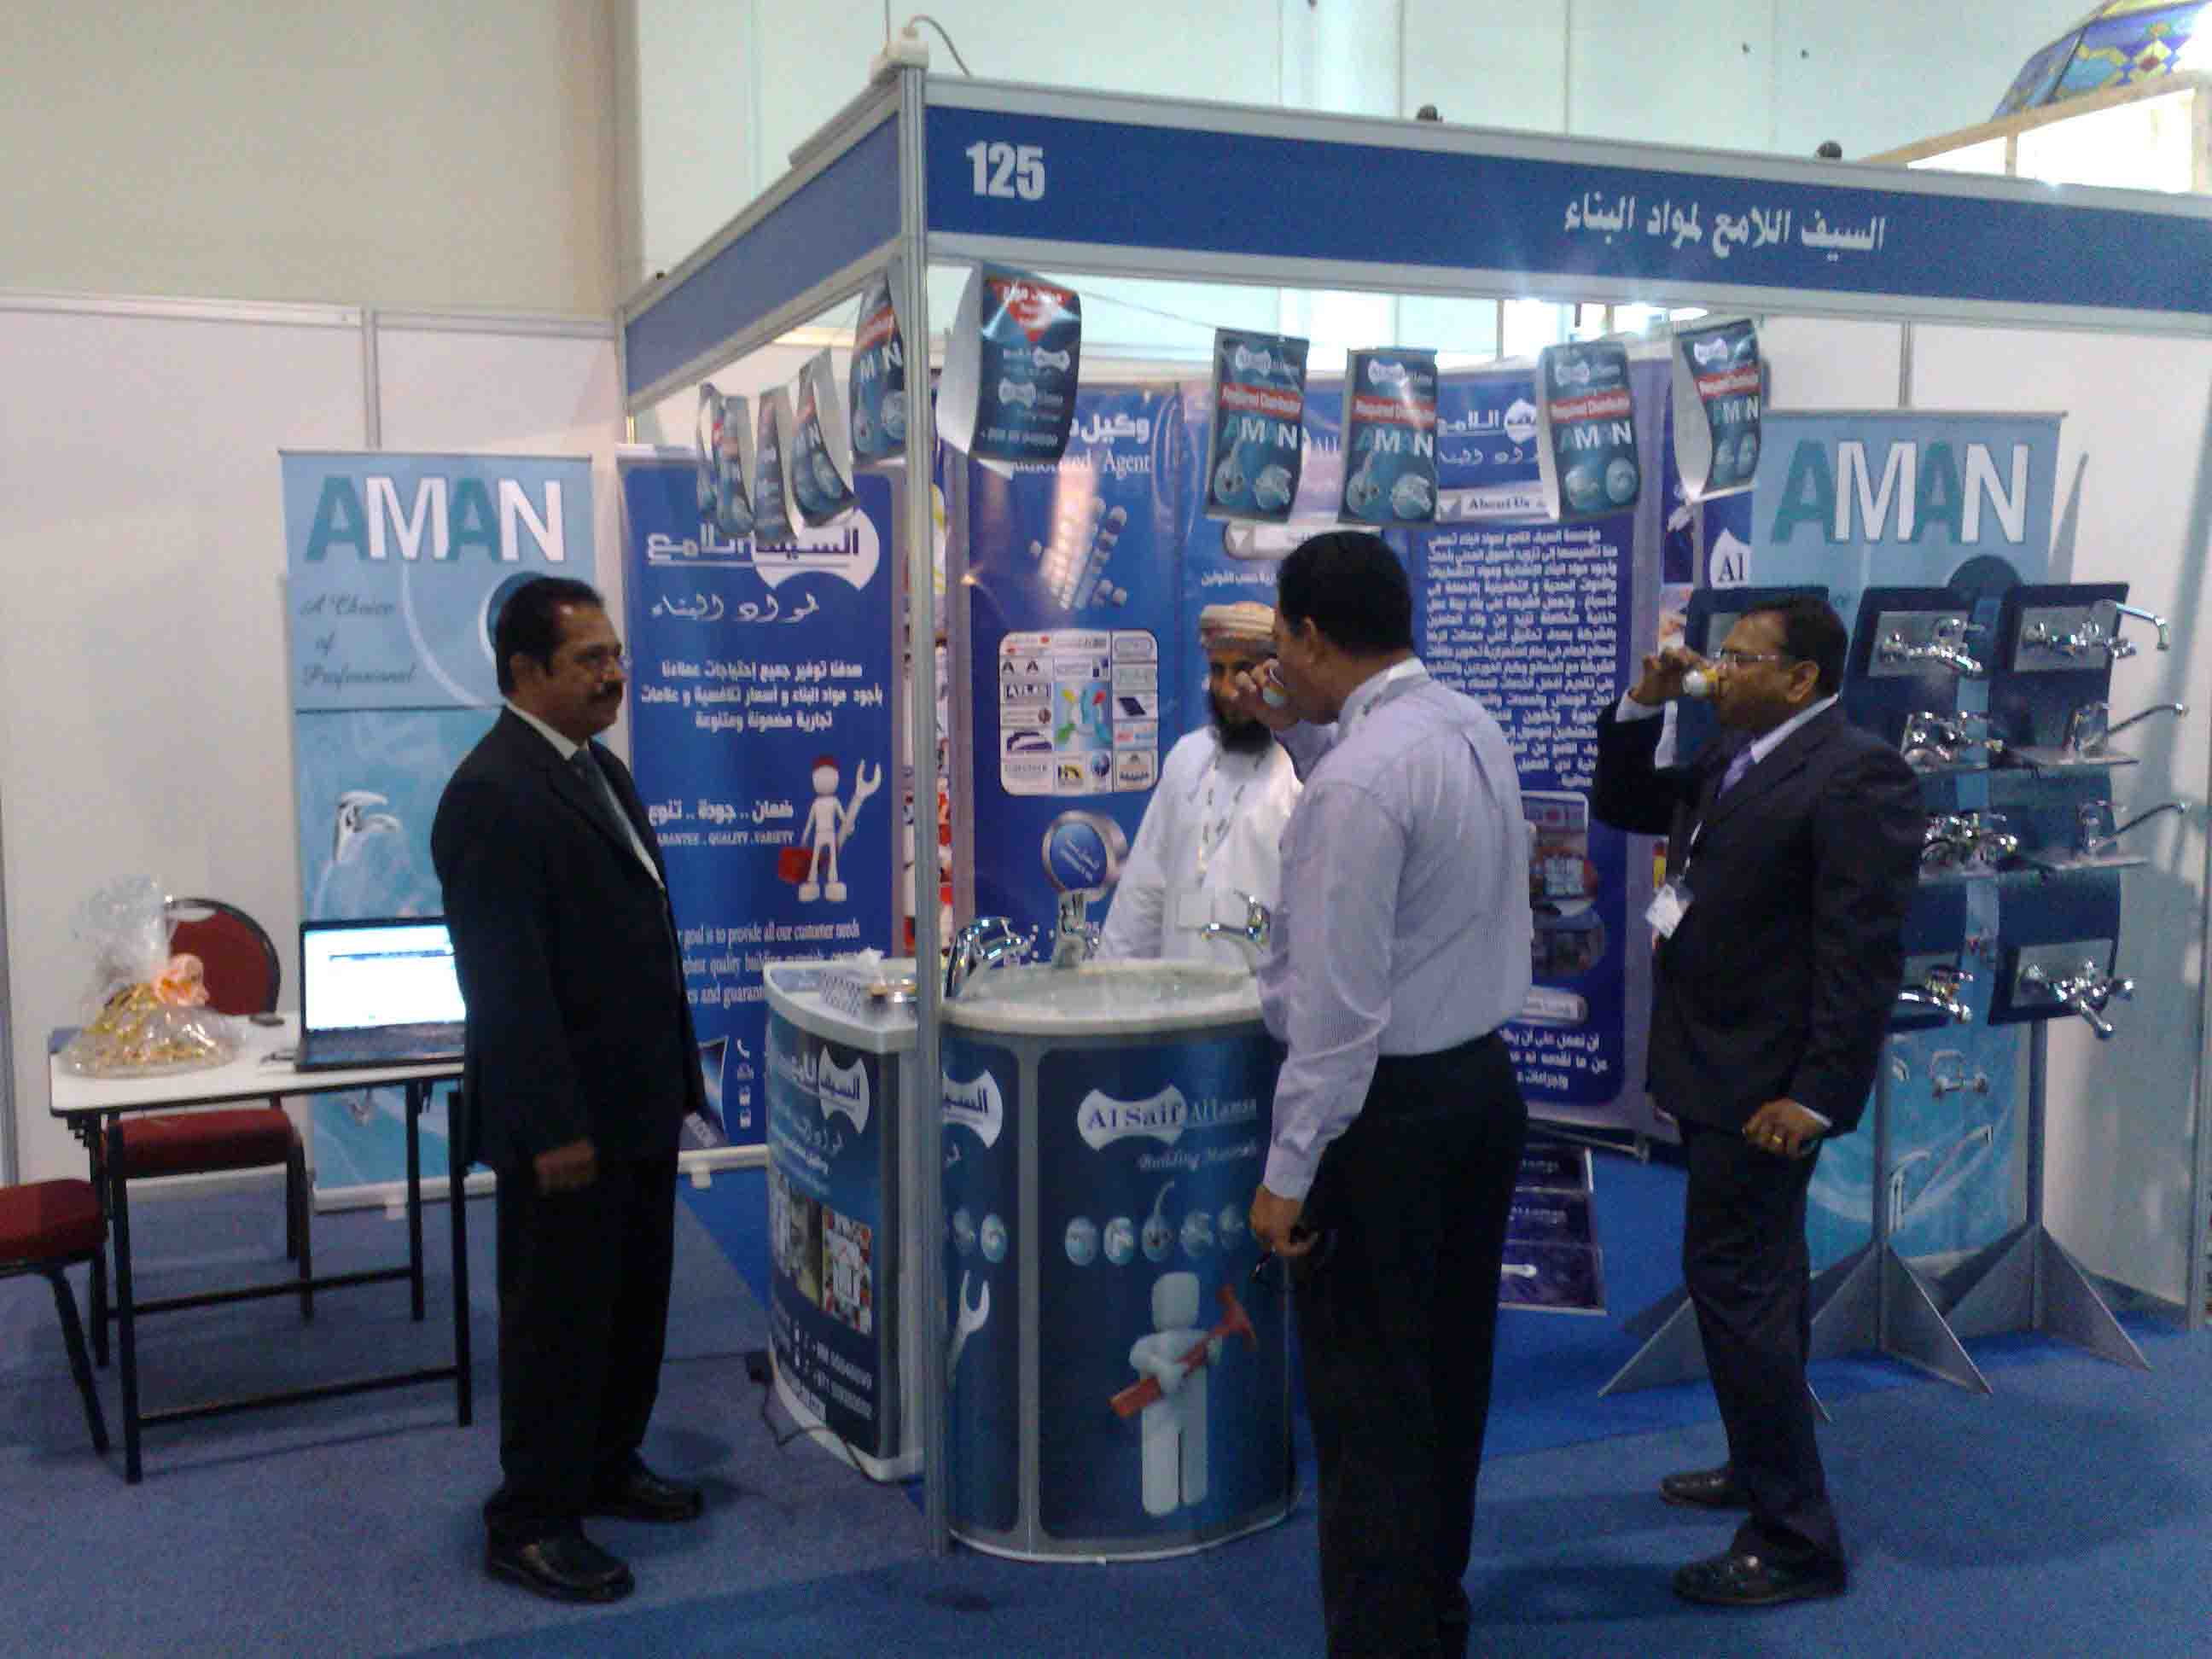 Al Saif Al Lamaa Company participated in the international exhibition of construction materials in Muscat